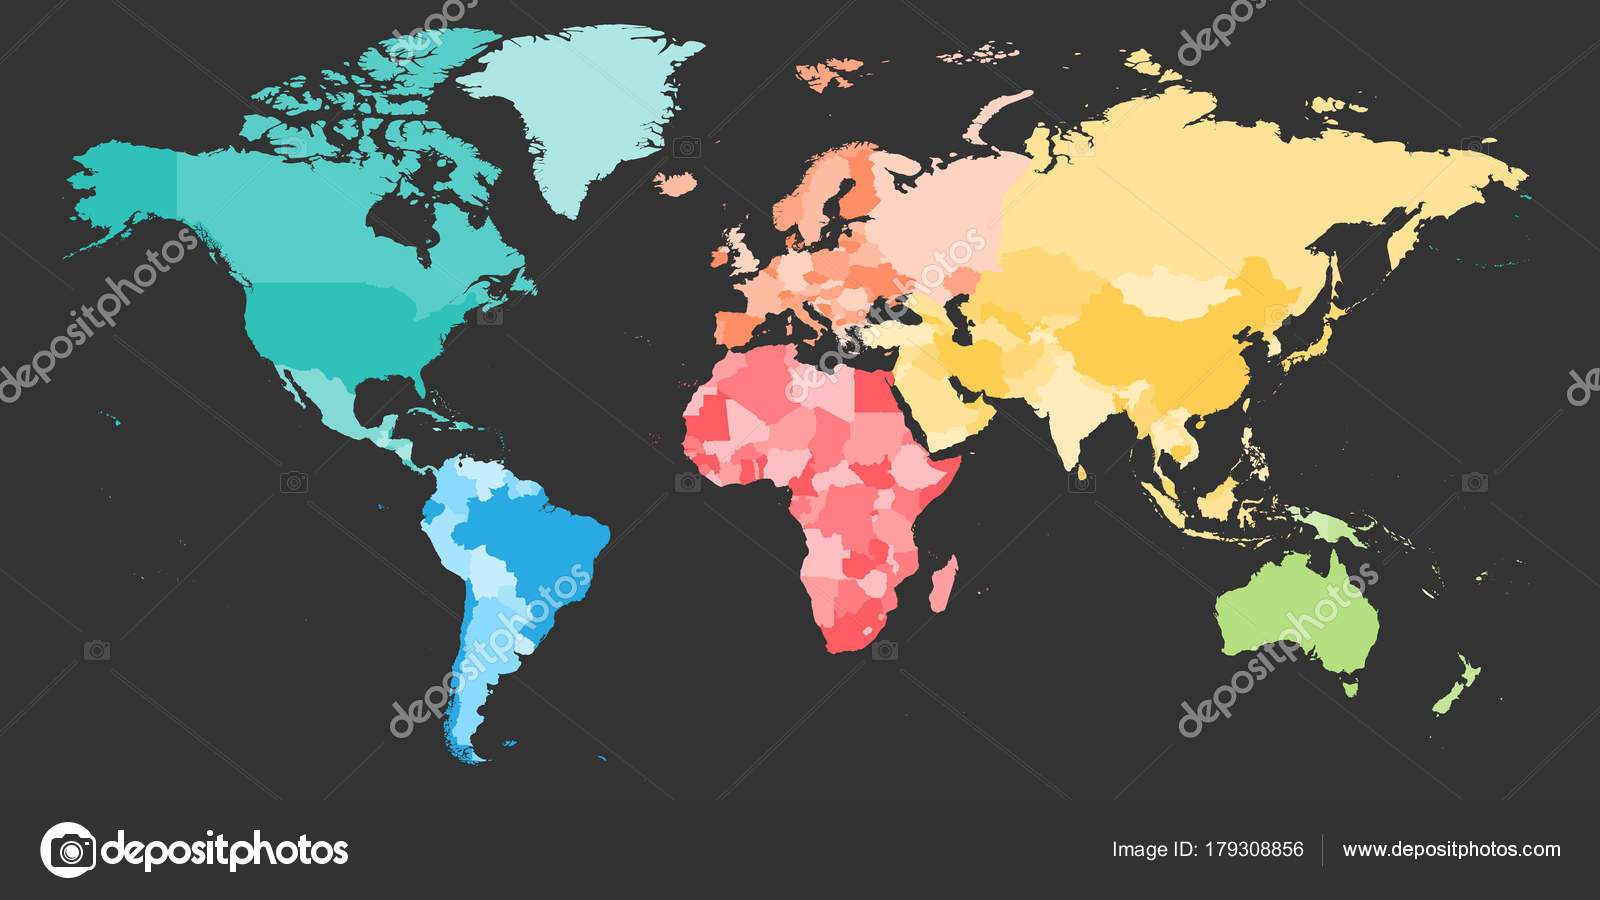 Colorful political map of world divided into six continents blank colorful political map of world divided into six continents blank vector map in rainbow spectrum gumiabroncs Images